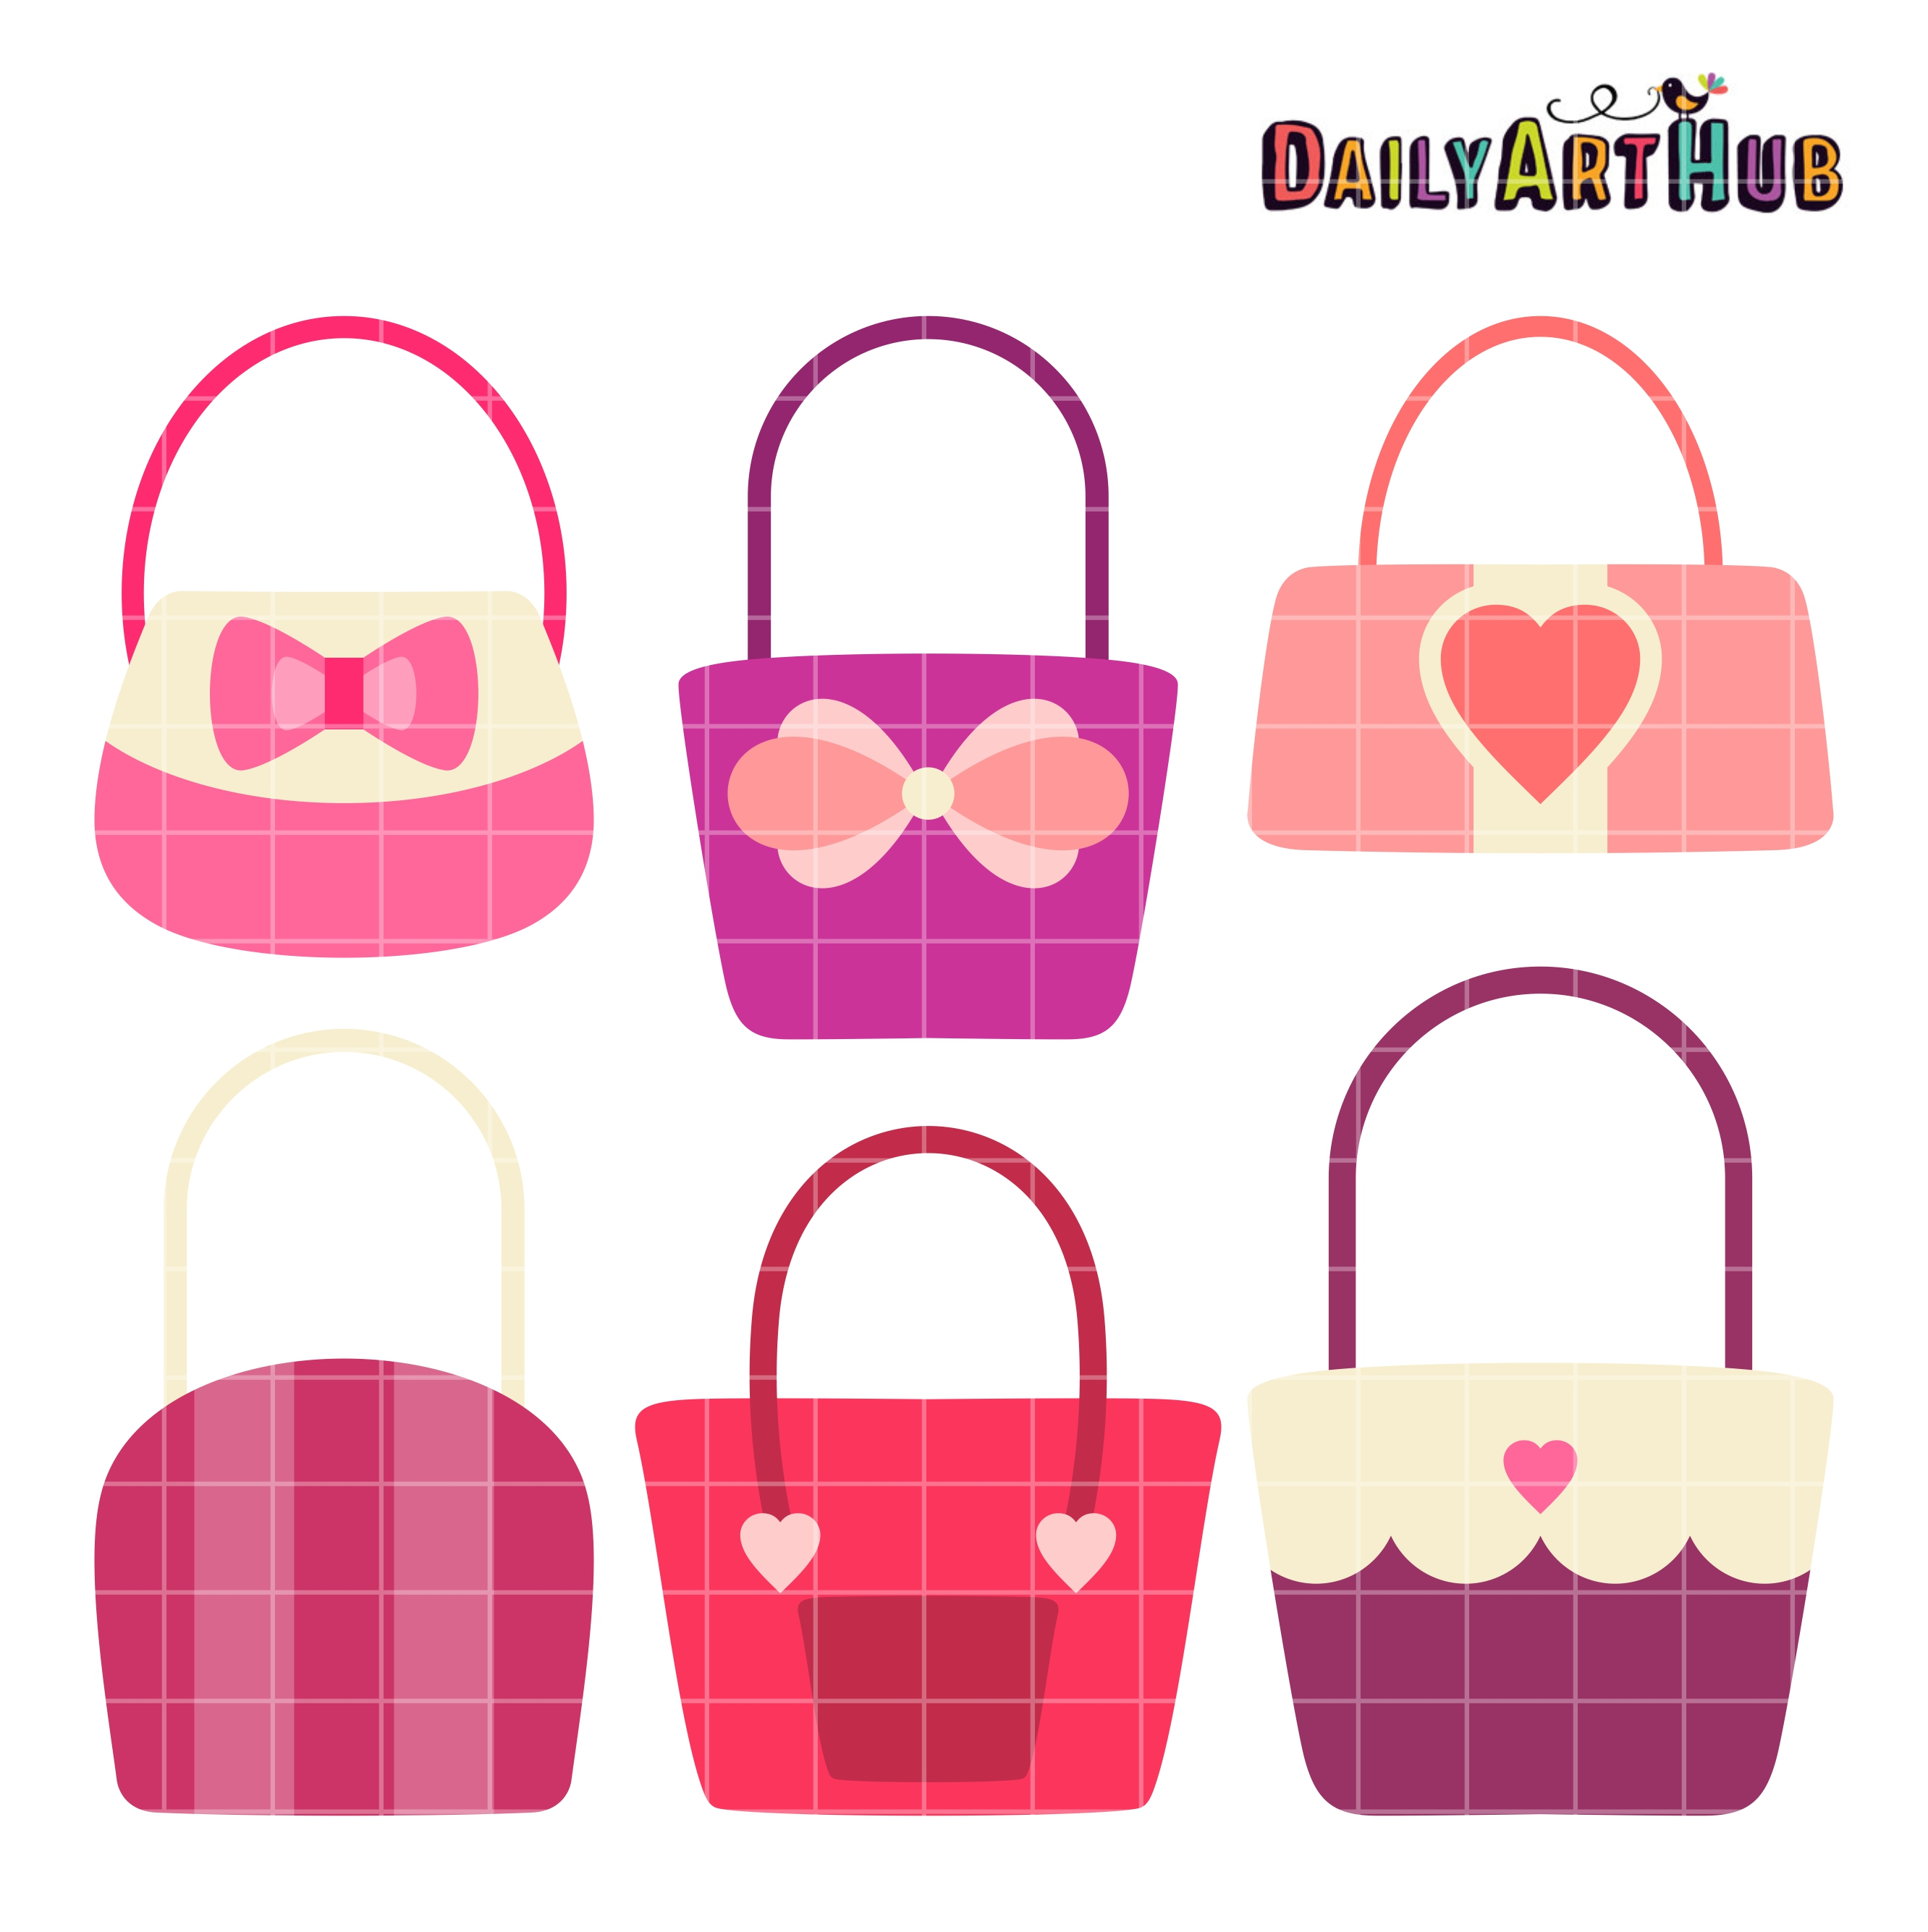 cute girly handbags clip art set daily art hub free clip art rh dailyarthub com Clutch Purse Clip Art Women's Purse Clip Art